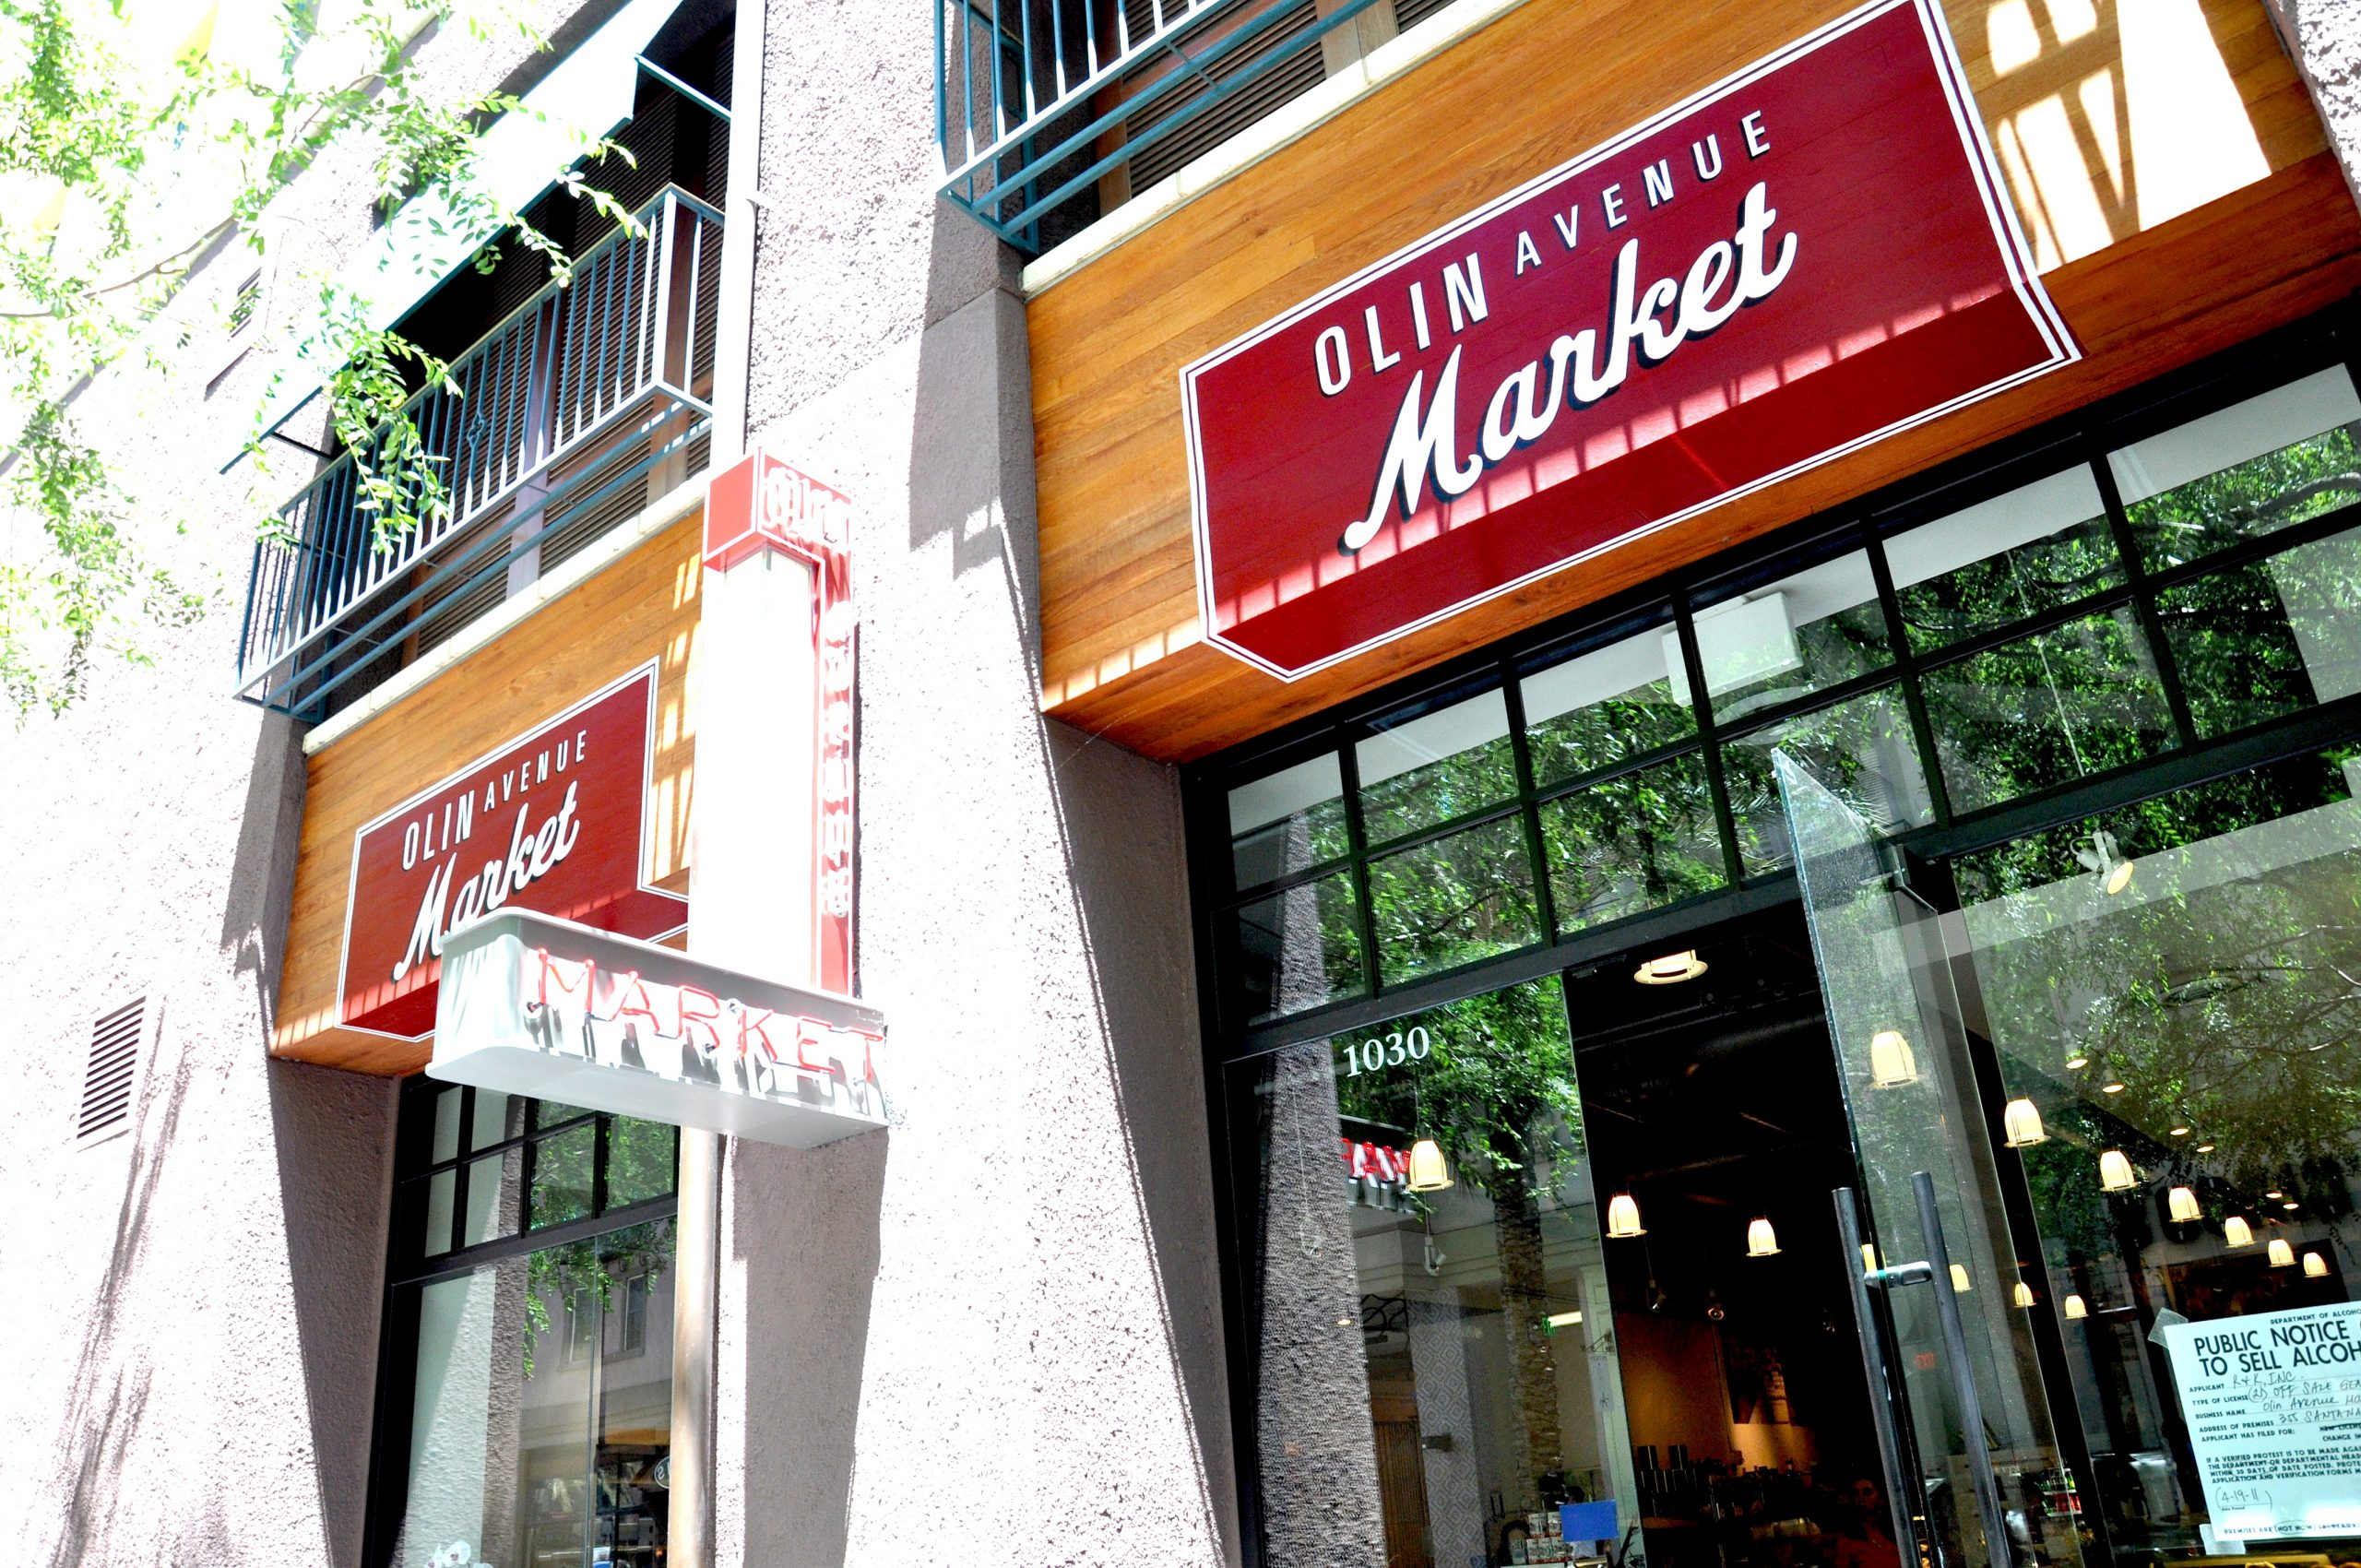 Olin-Avenue-Market-Santana-Row-San-Jose-CA-Photo-1